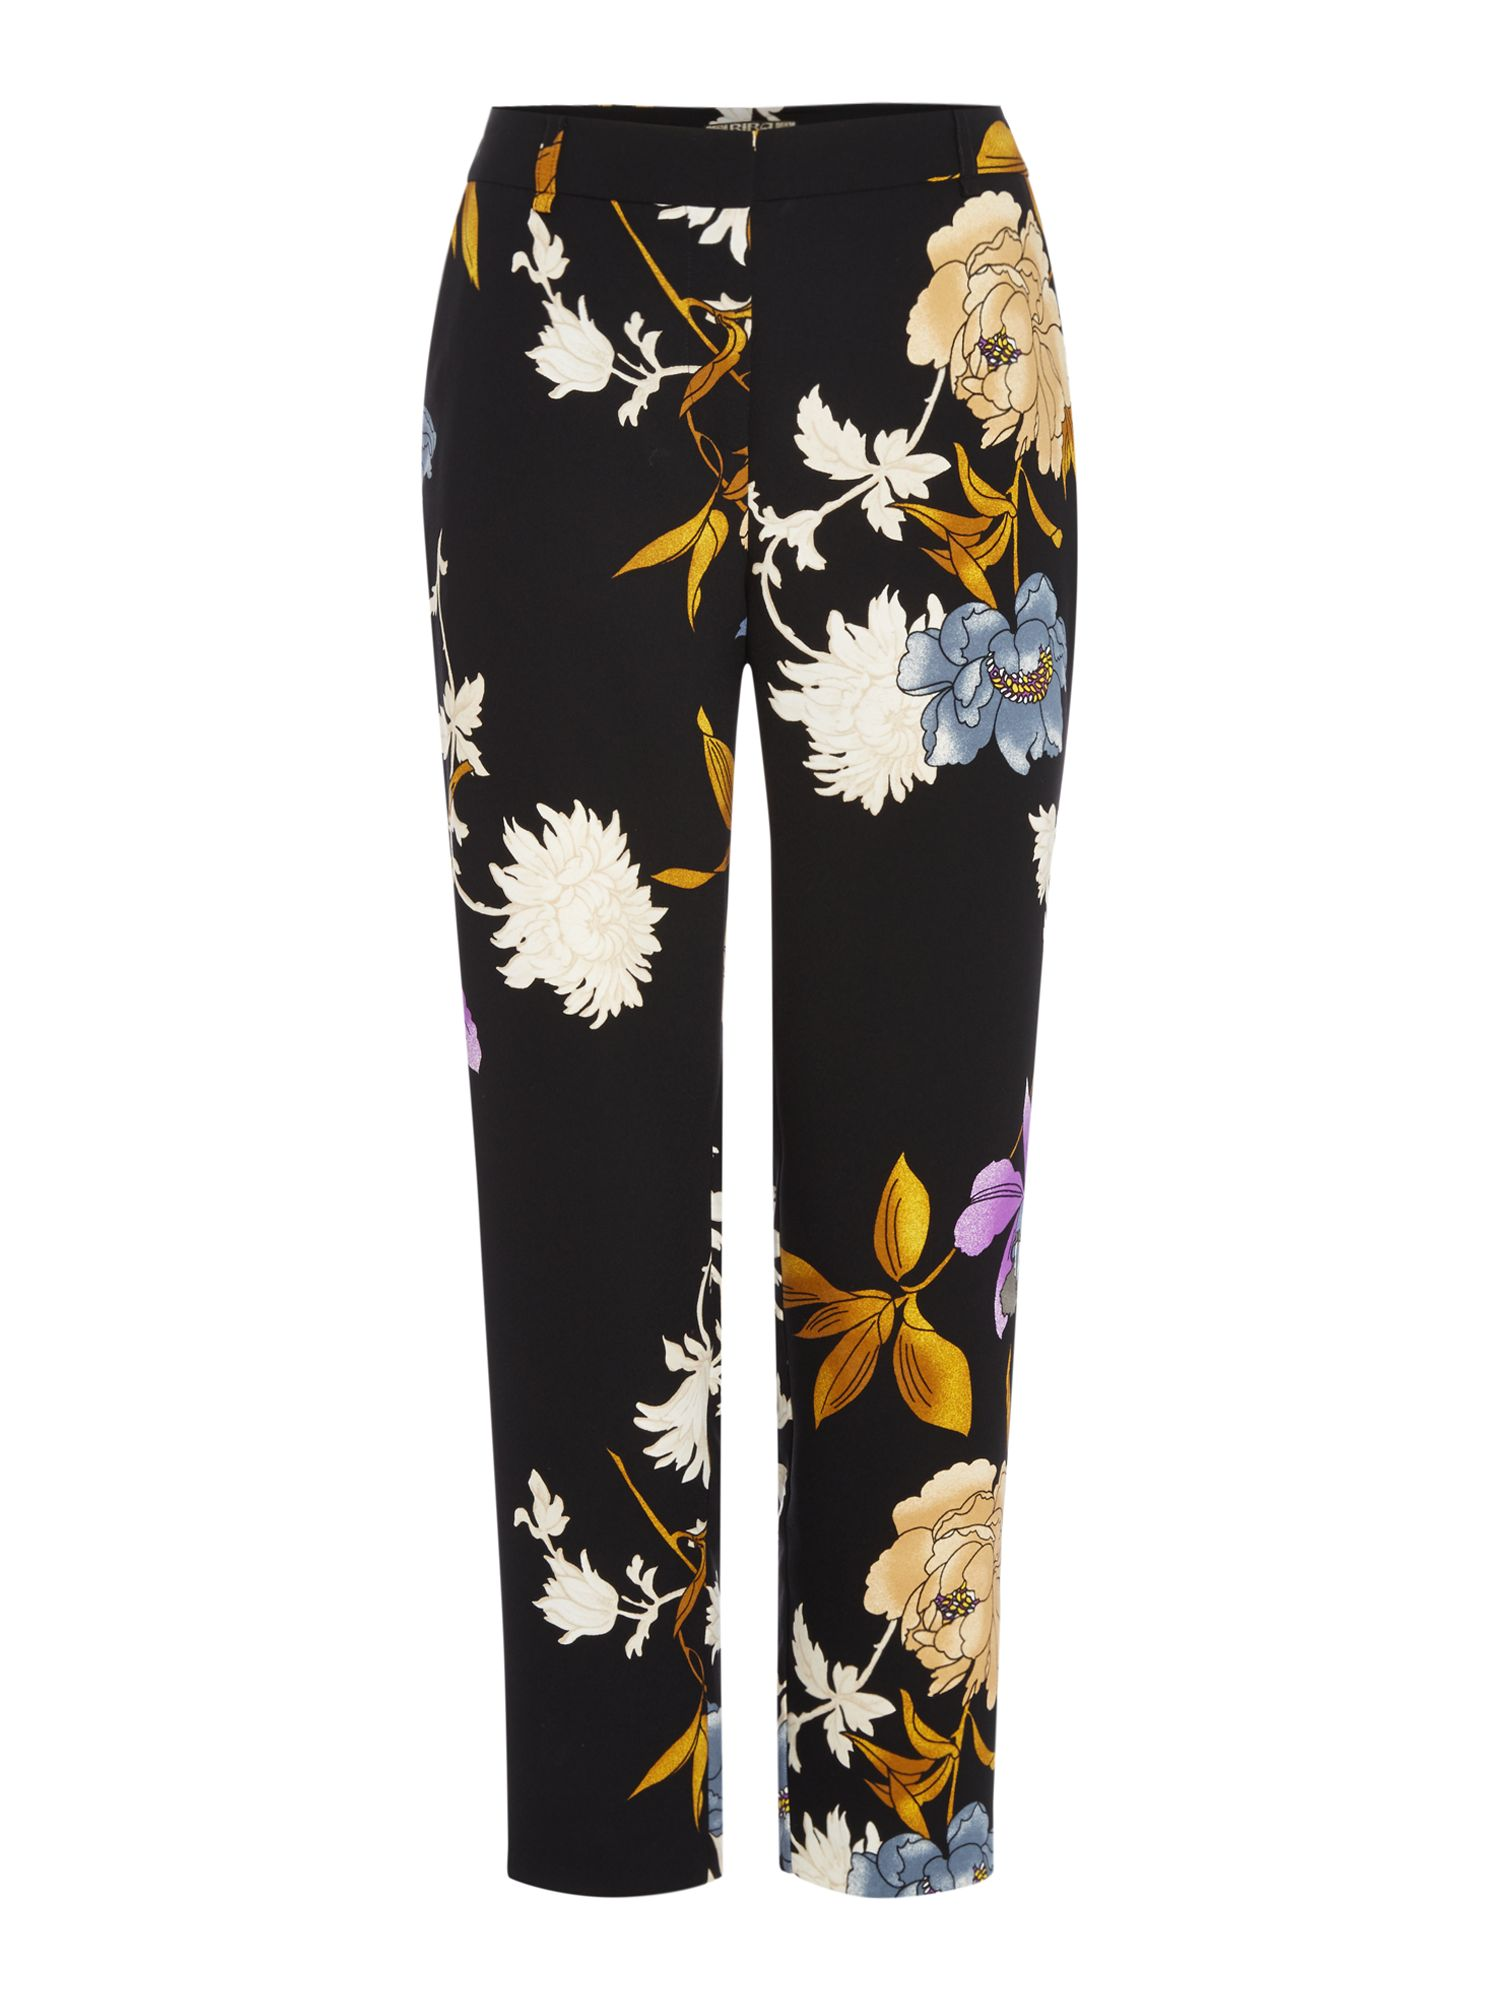 Biba Printed floral tailored trousers, Multi-Coloured